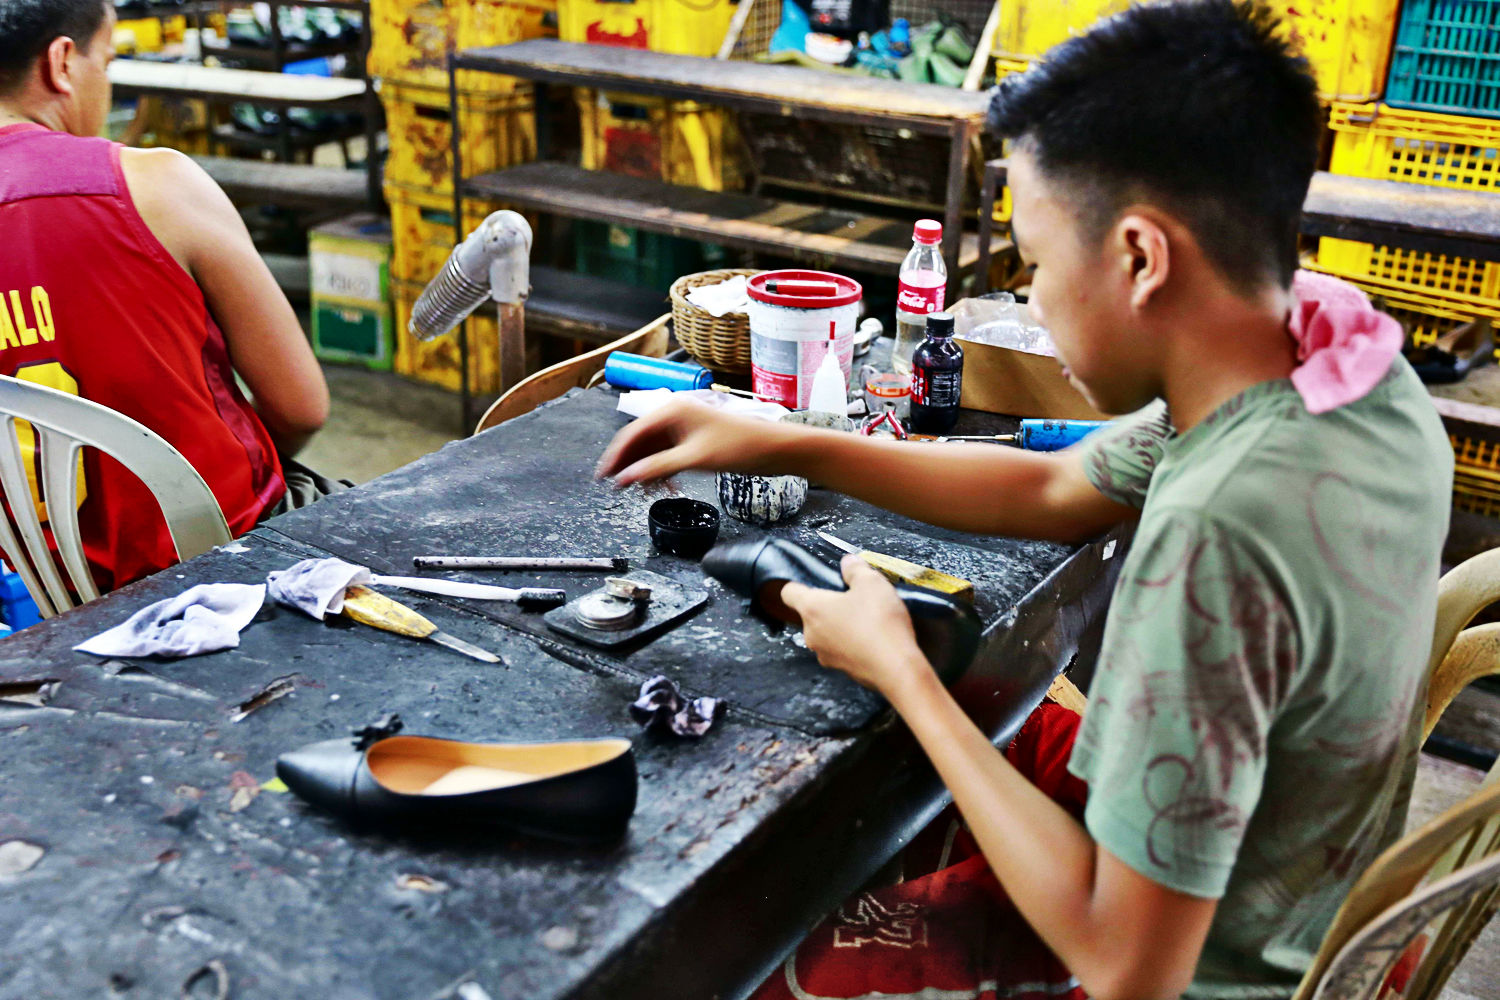 Marikina shoemakers to hold fairs in various metro manila cities the municipality of muntinlupa will shoulder the costs of putting up tents and booths where the shoemakers will be displaying and selling their products stopboris Choice Image